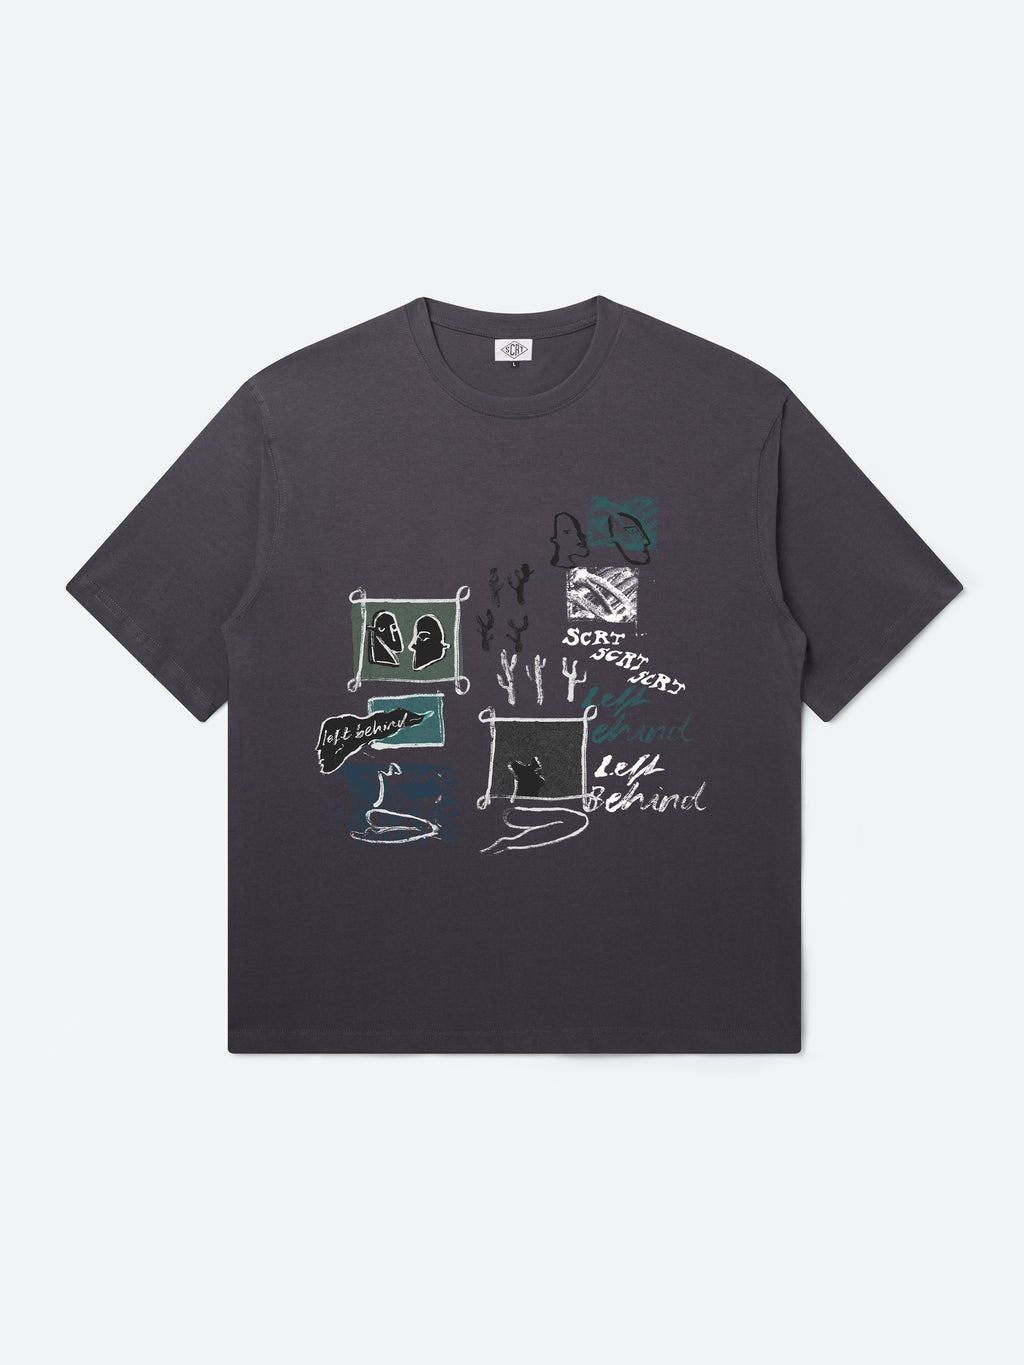 Inky T-Shirt - Nine Iron